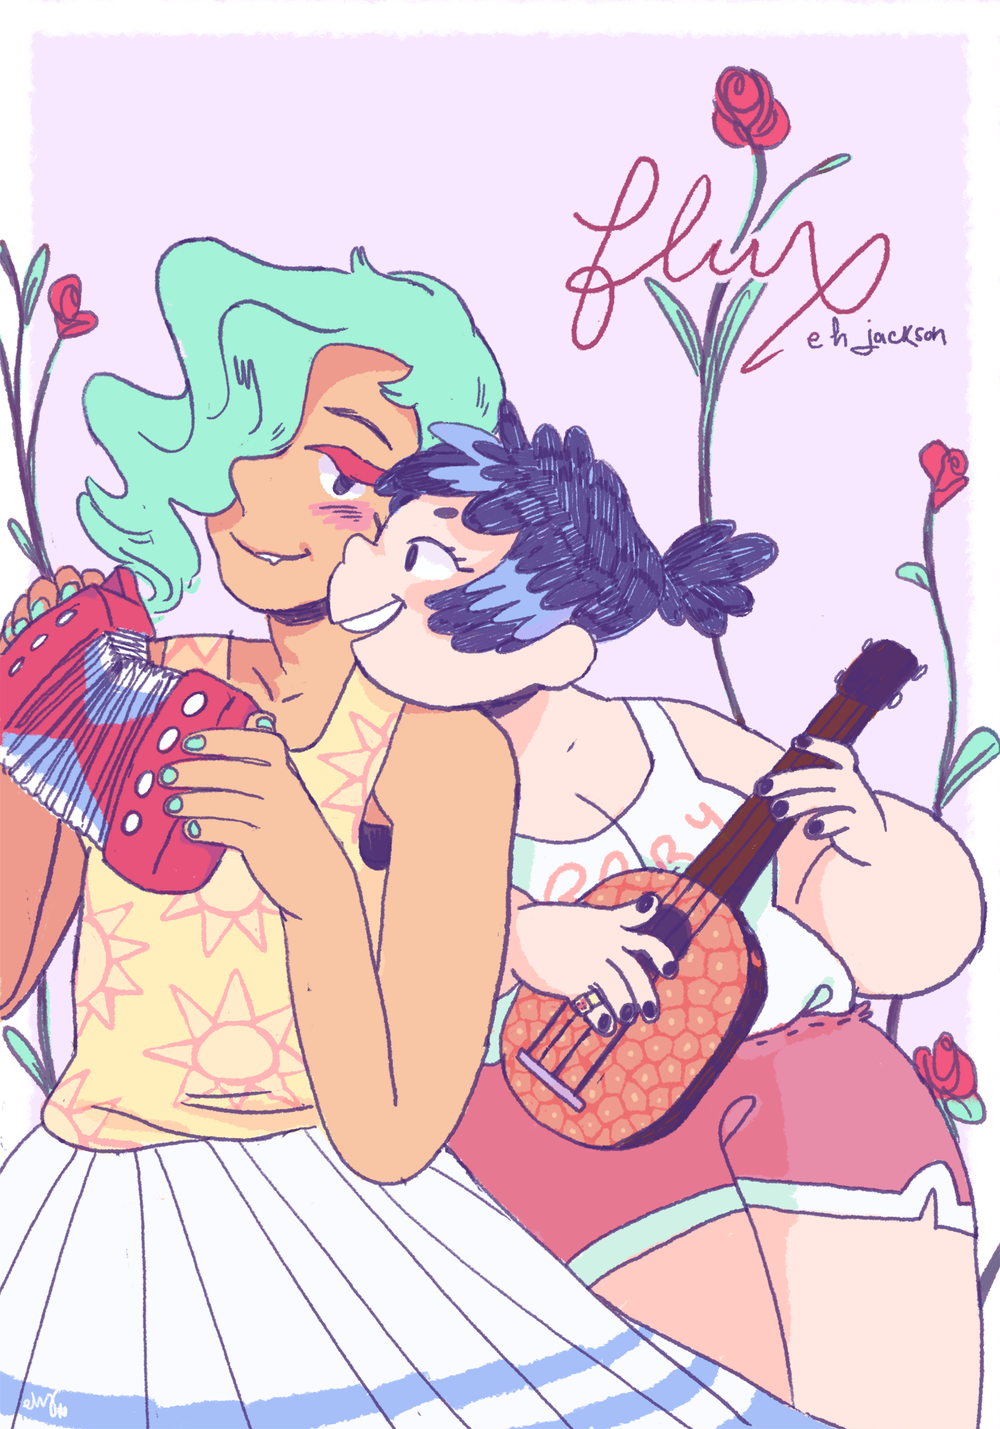 FLUX , 12 pgs, color, 2015   Nominated for PRISM Awards Best Short Form Comic 2017   gender identity, transitioning, and trying to start a band with your best friend.